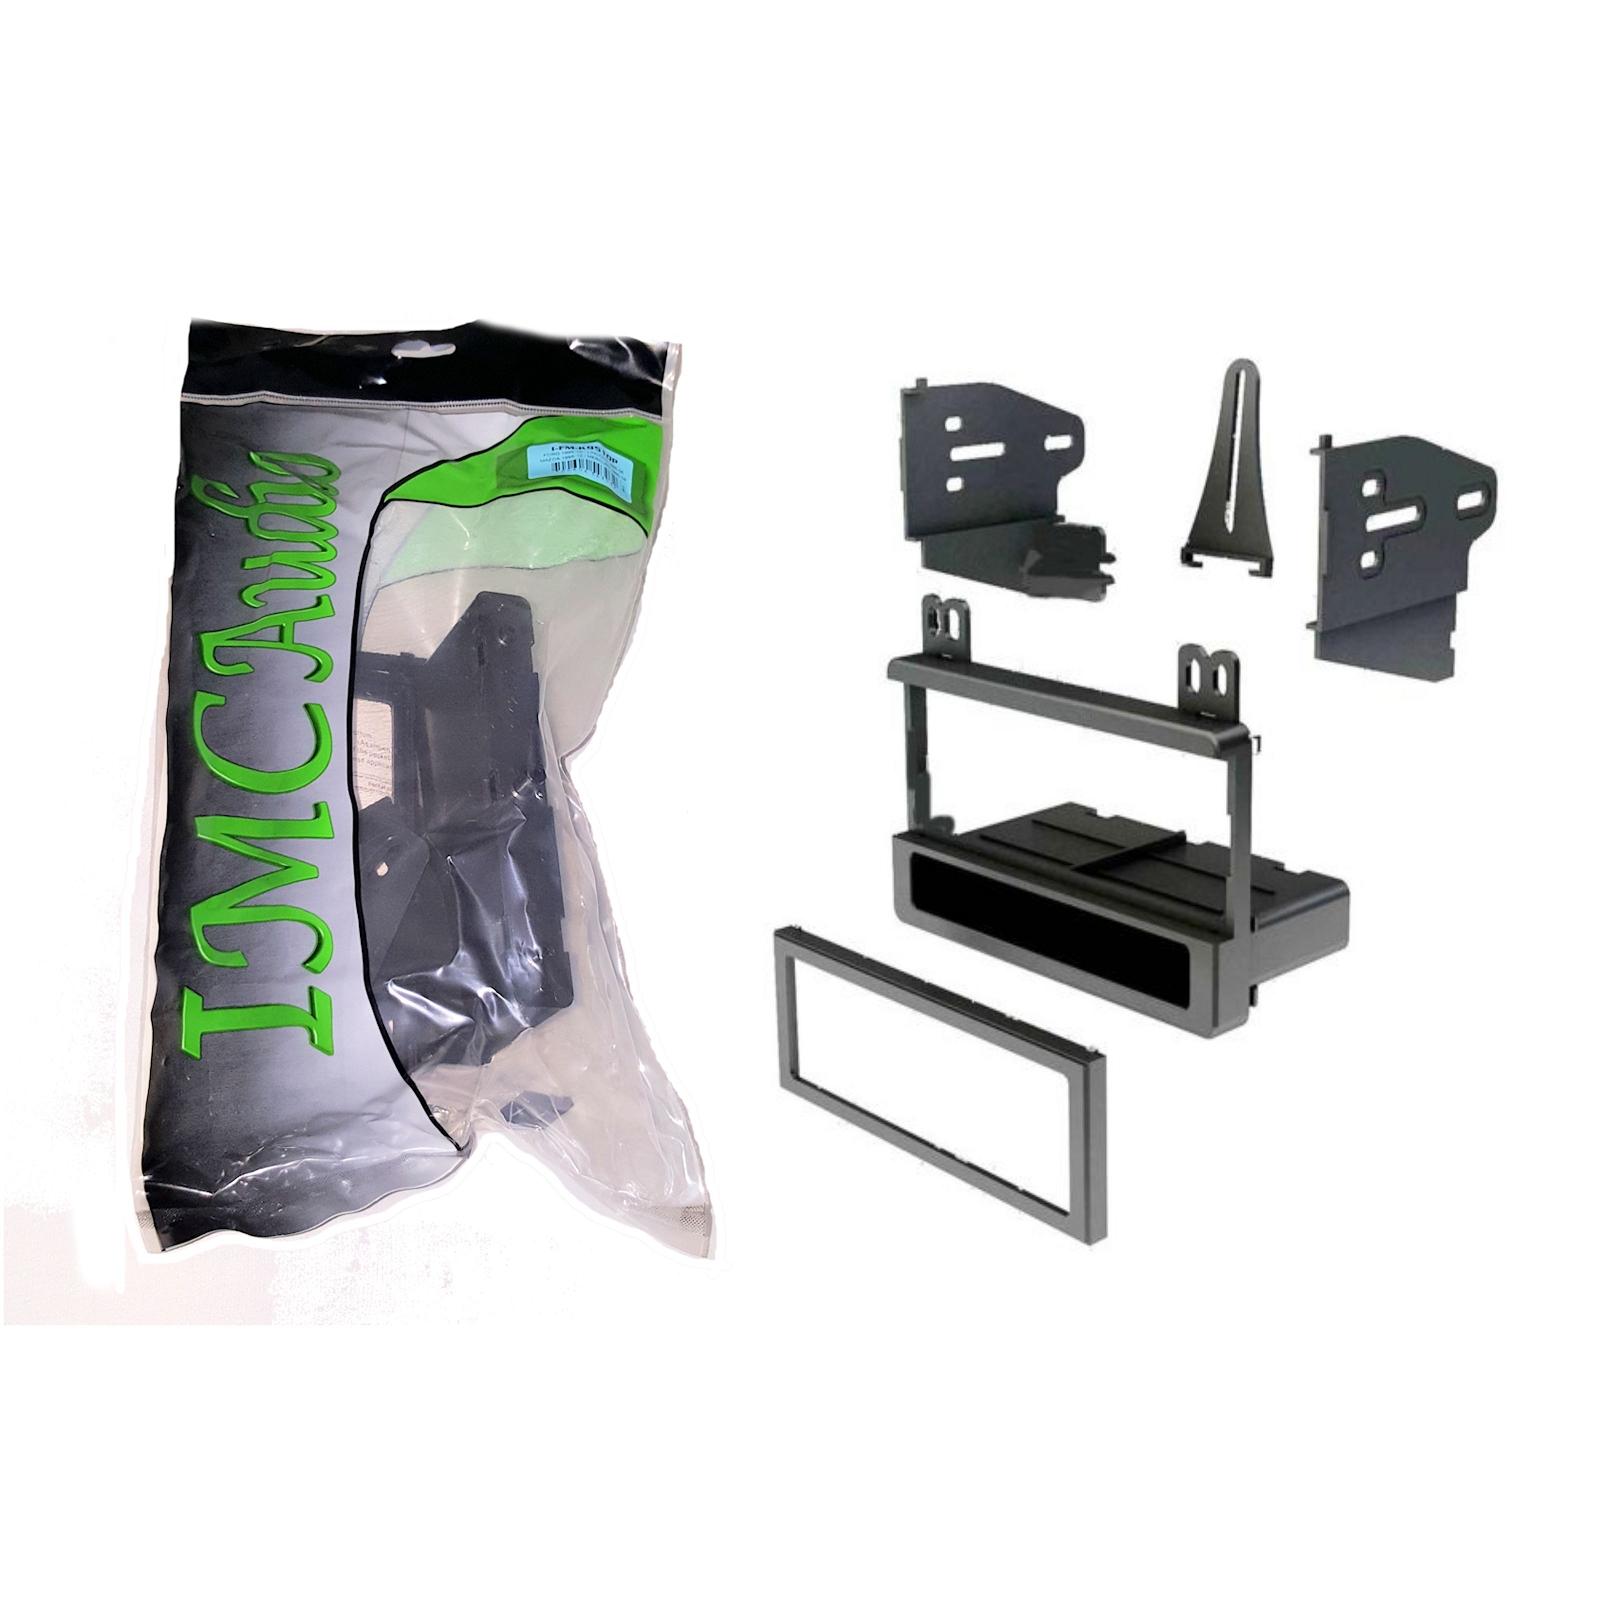 1995-2010 Ford Ranger Single Din Dash Kit for Stereo Replacement